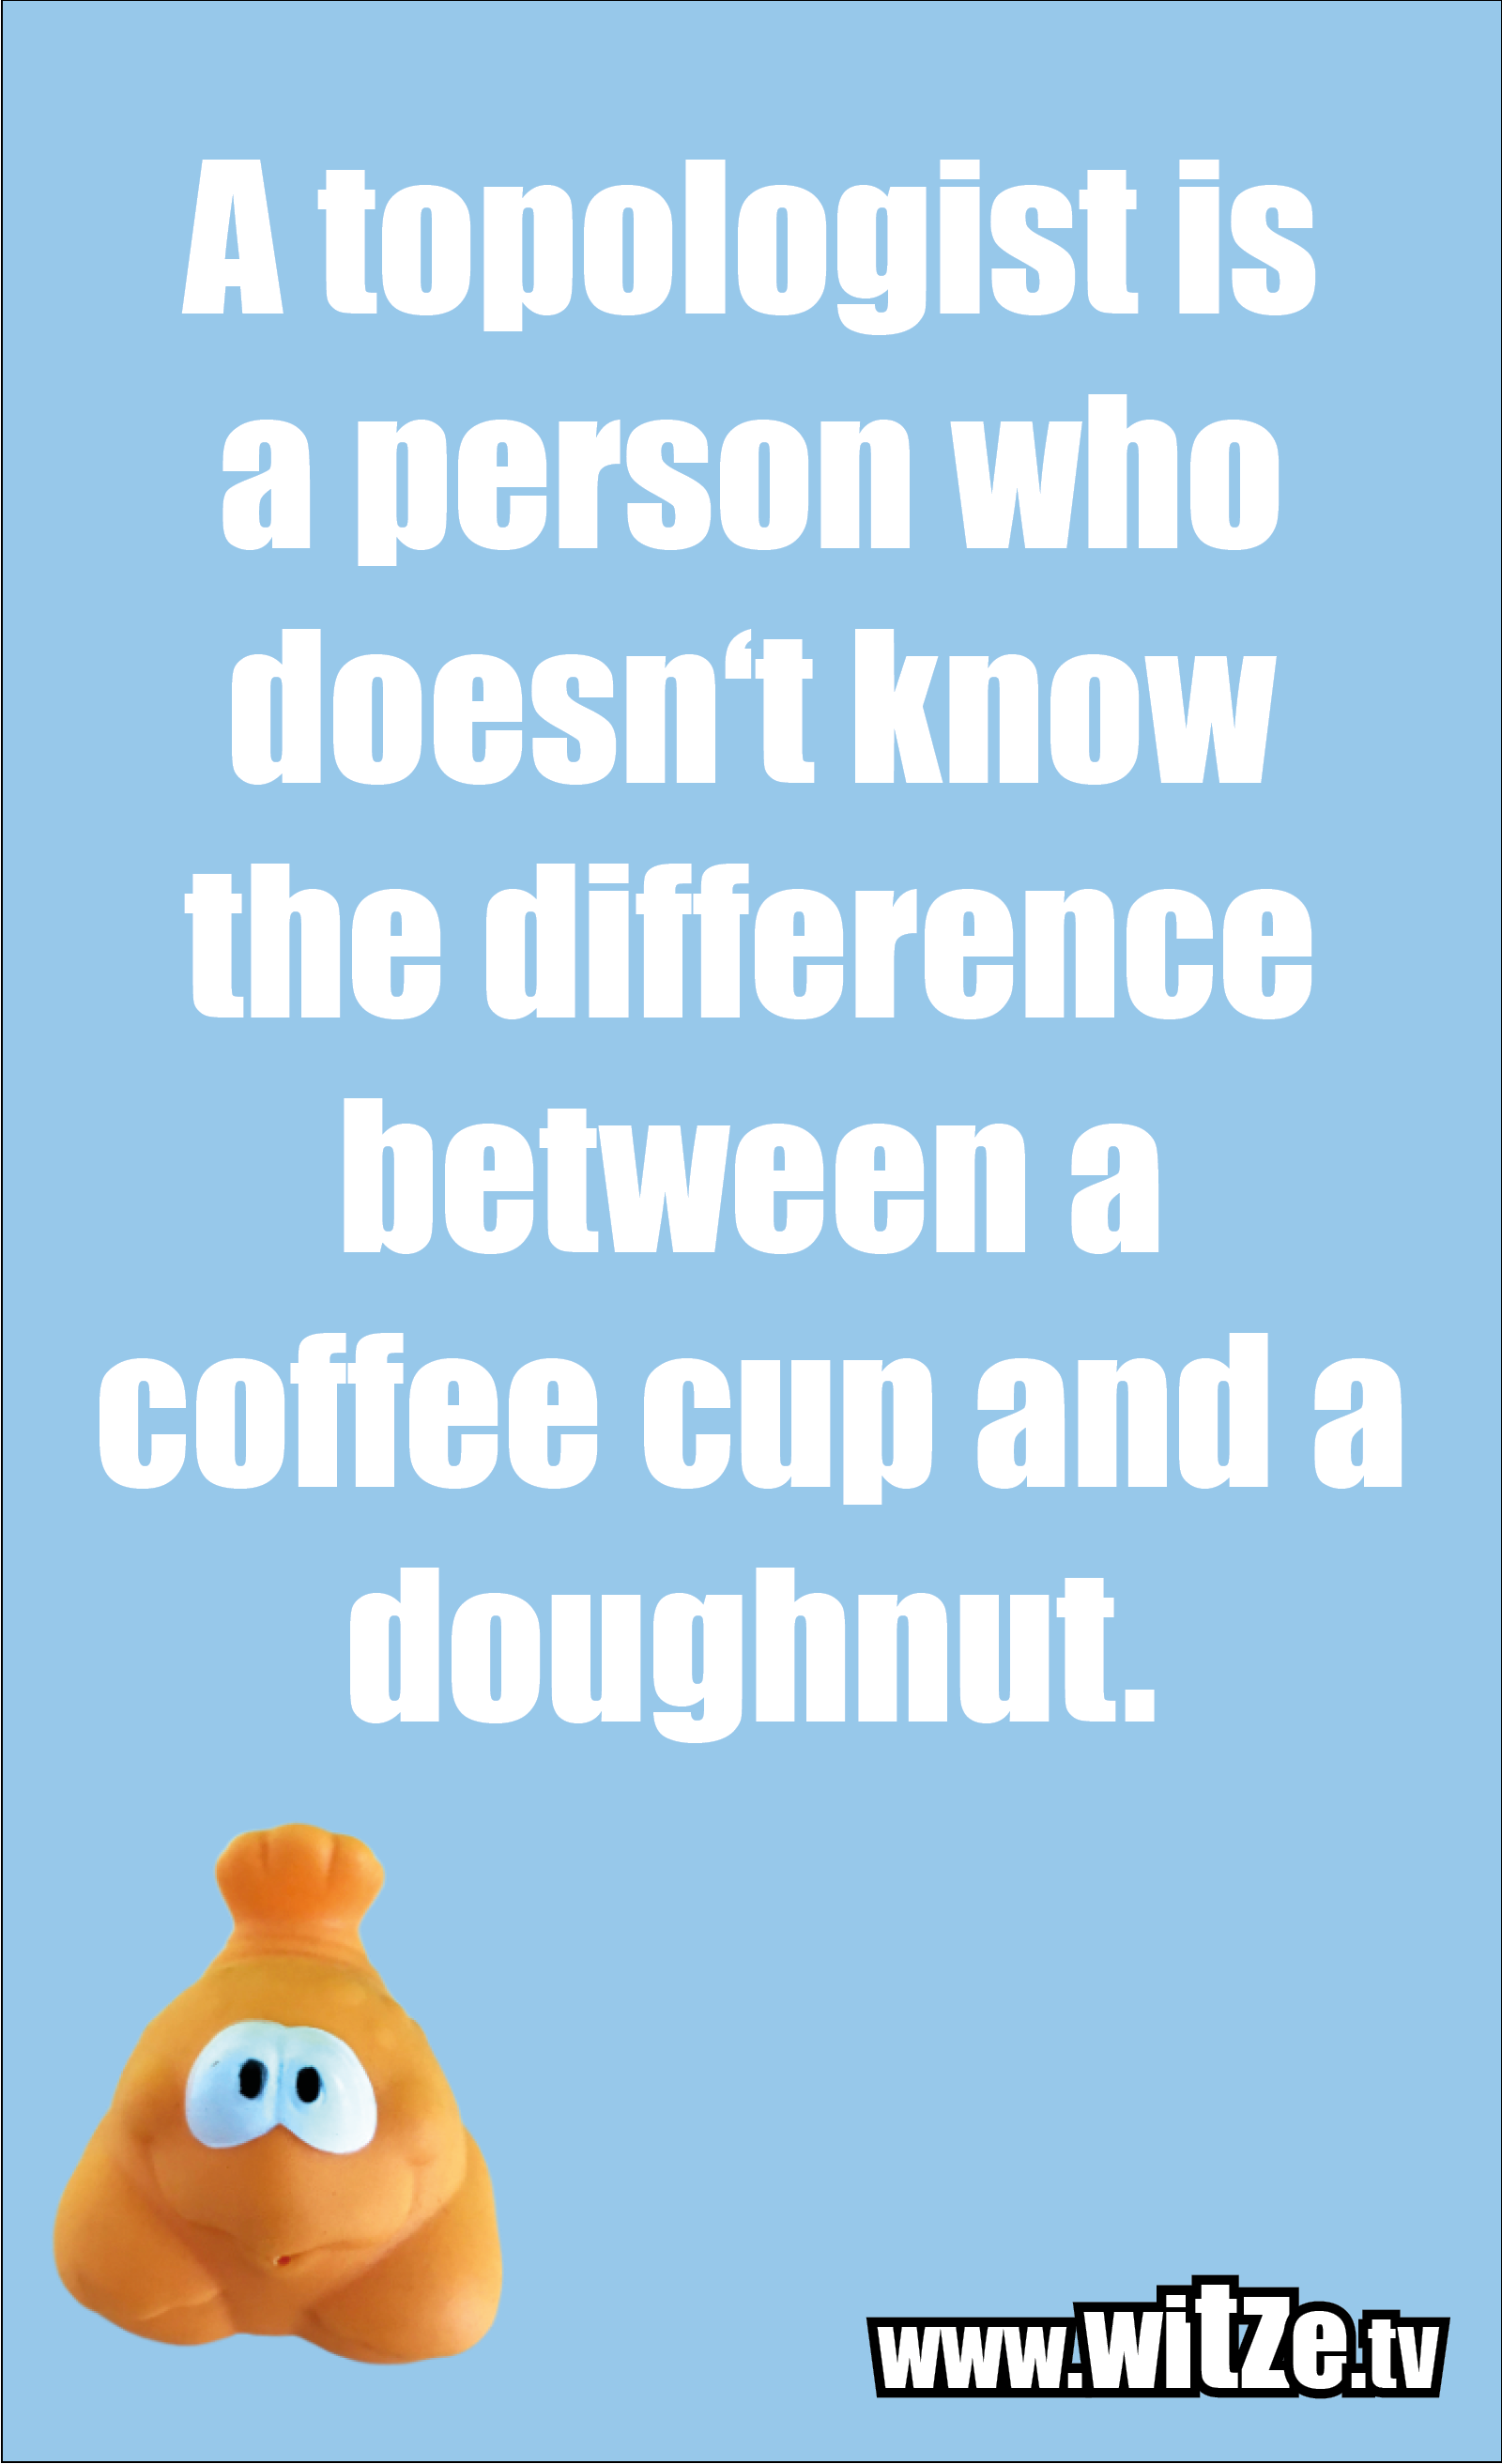 Math joke… A topologist is a person who doesn't know the difference between a coffee cup and a doughnut.